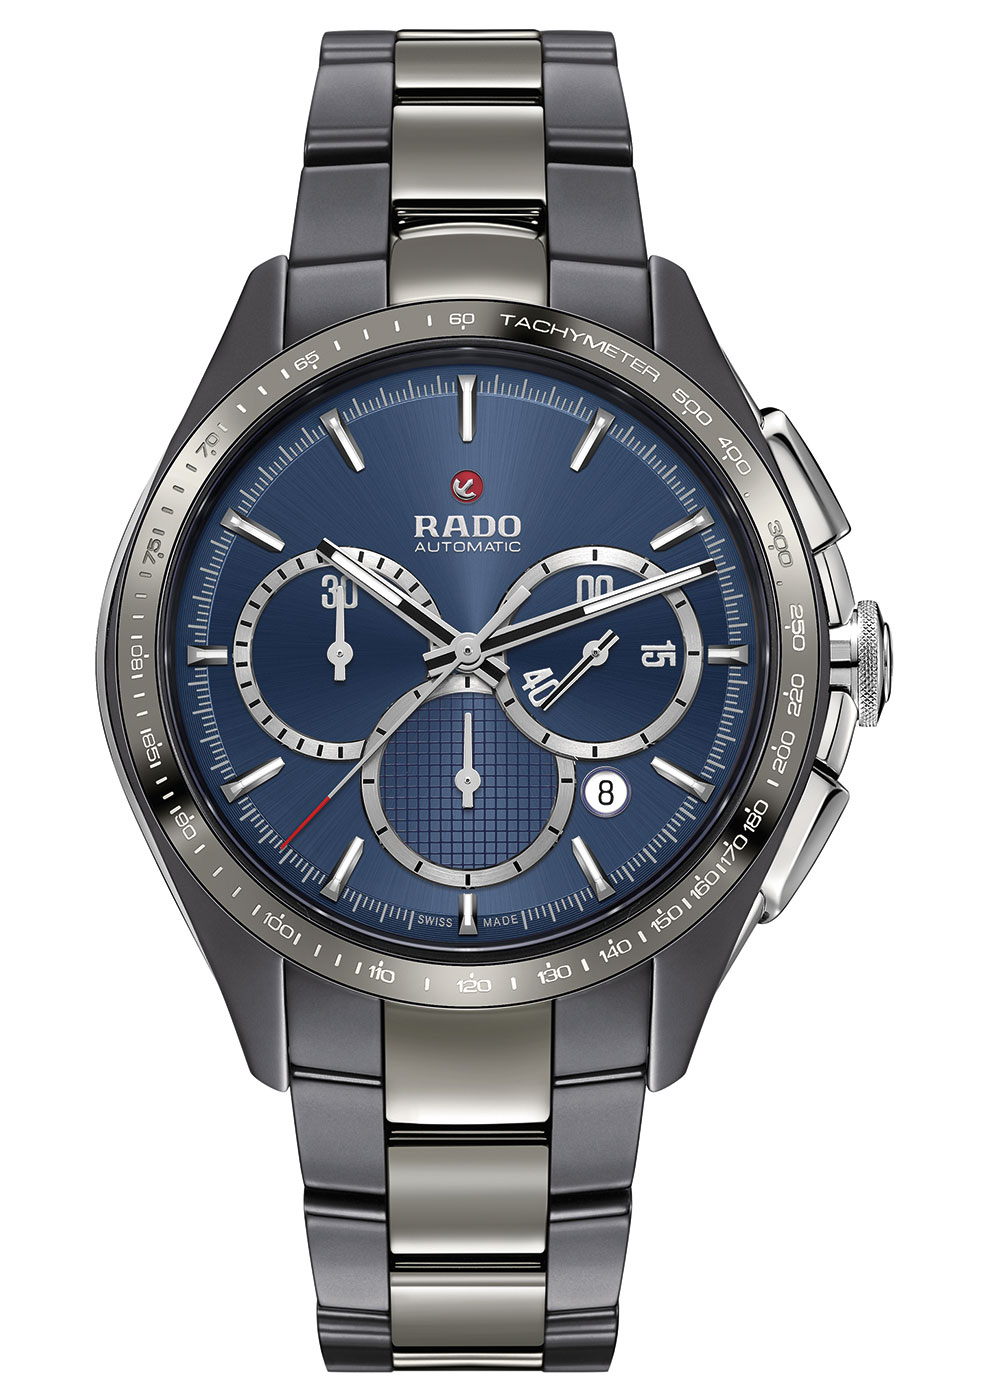 baselworld-2017-preview-rado-hyperchrome-match-point-chronograph-einstieg-01